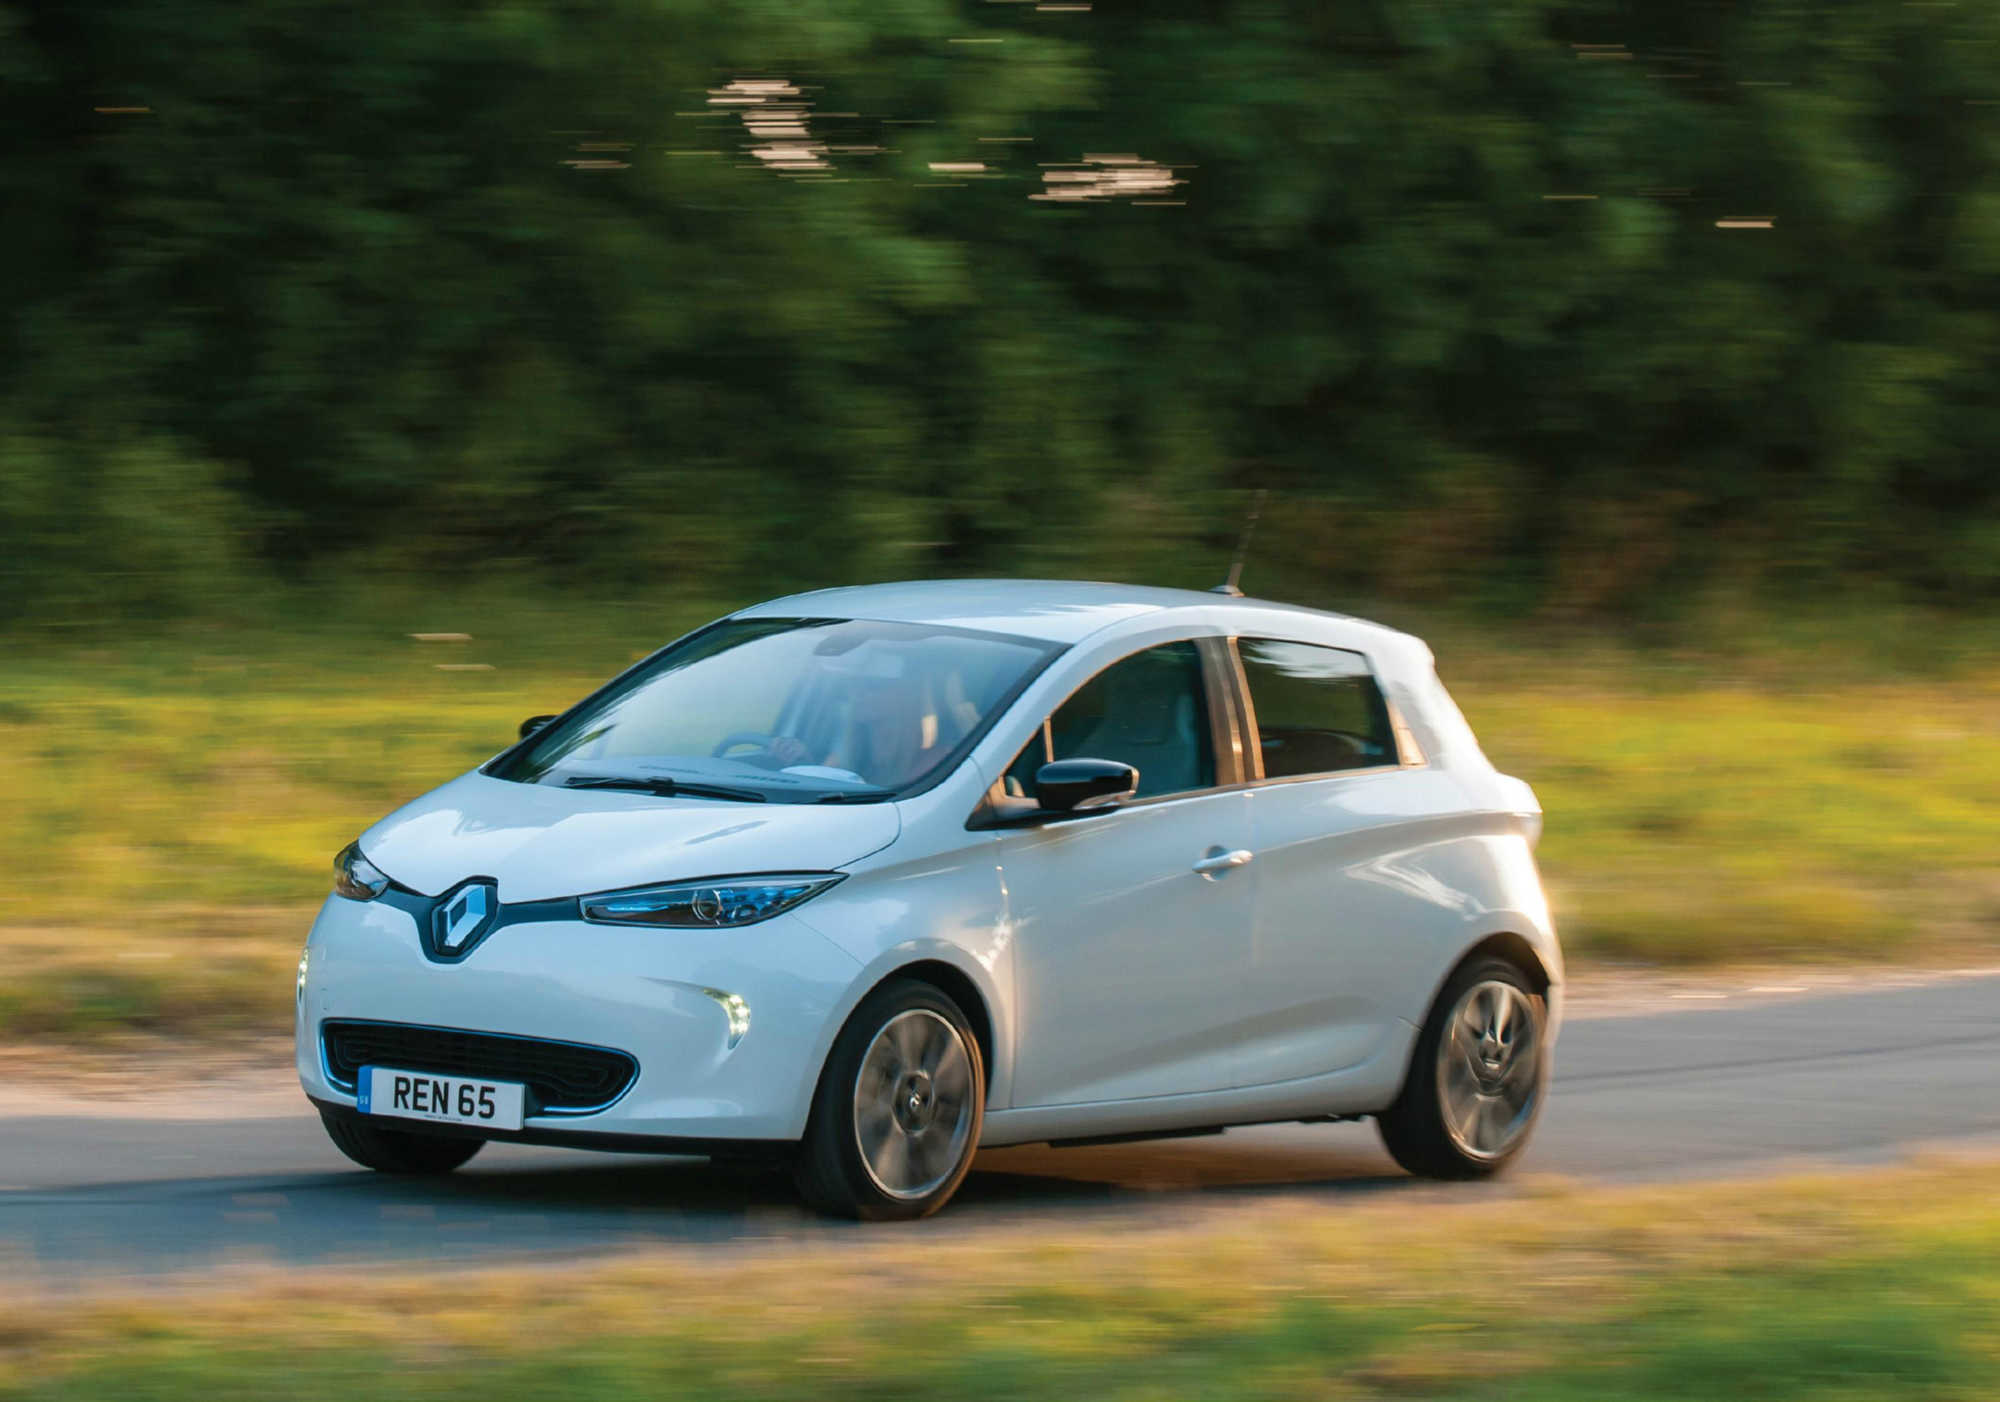 renault zoe hatchback review car keys. Black Bedroom Furniture Sets. Home Design Ideas